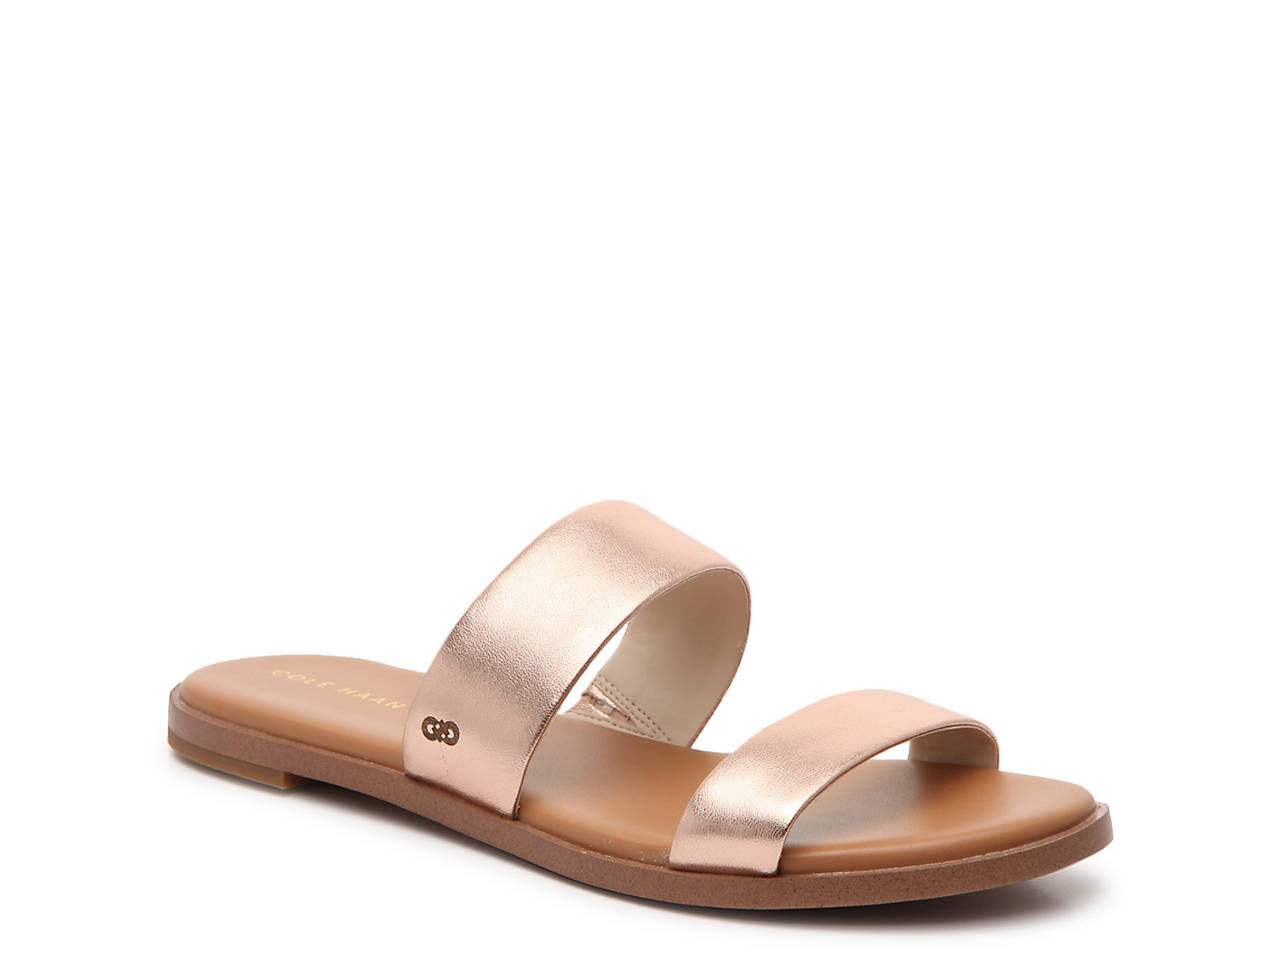 d2de61f66956 Cole Haan Findra II Sandal Women s Shoes